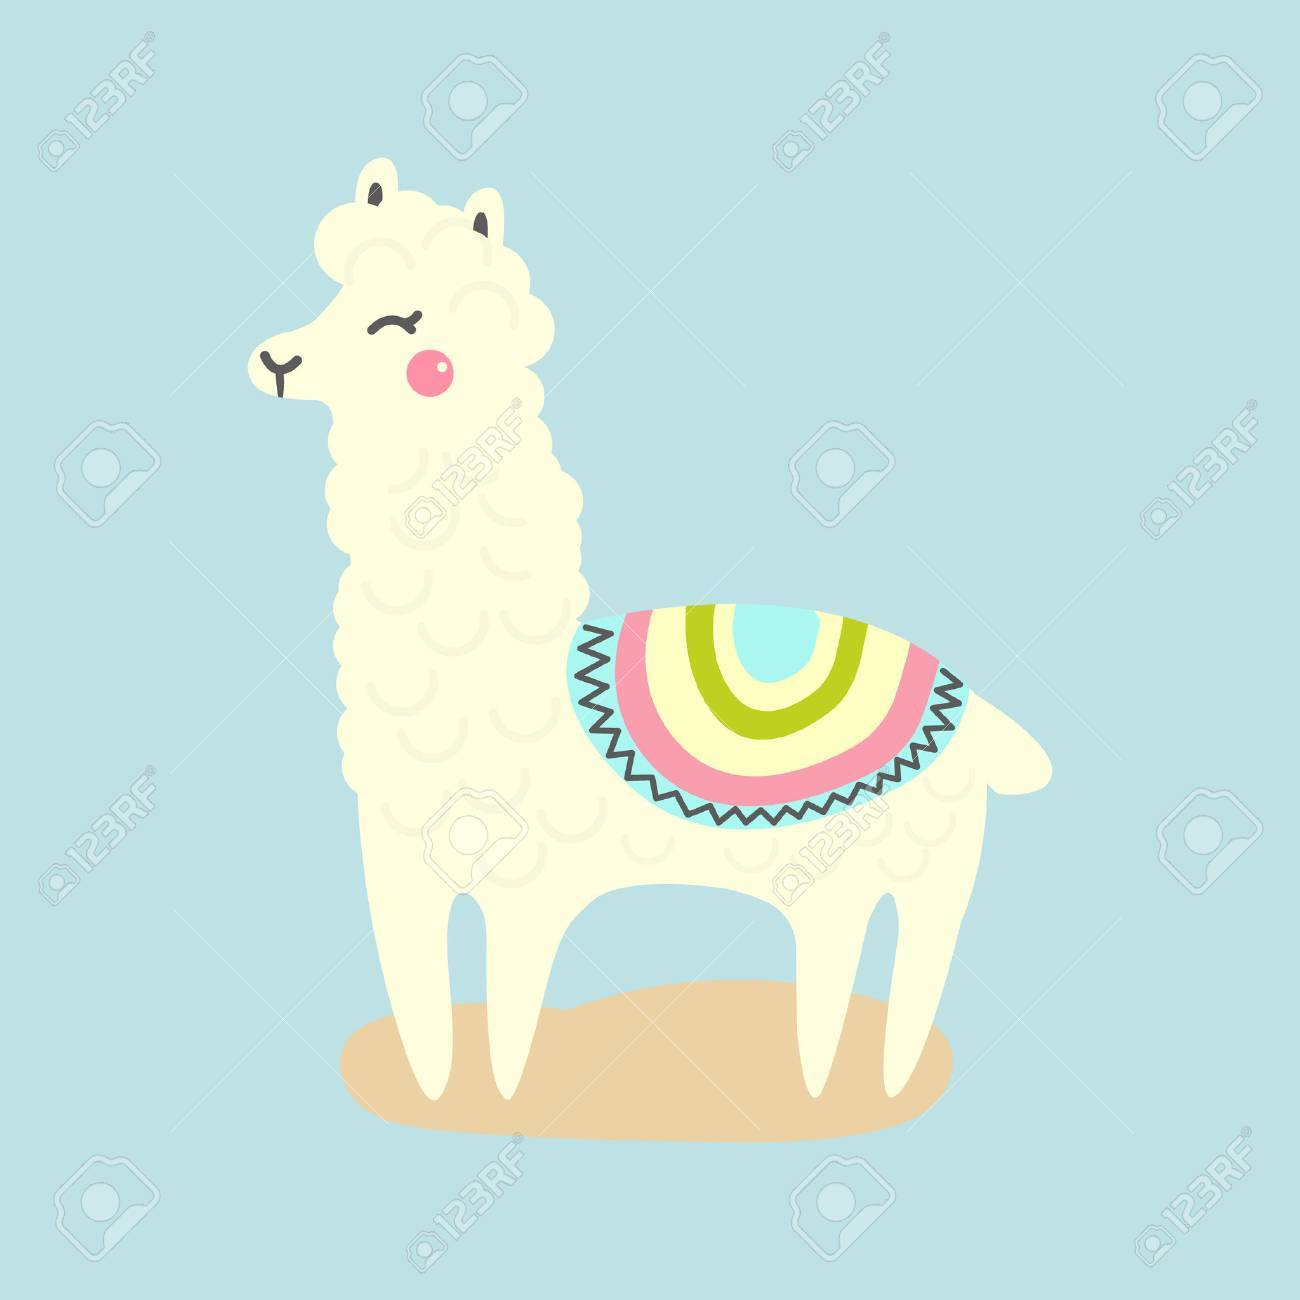 Vector cute llama or alpaca illustration. Funny animal.